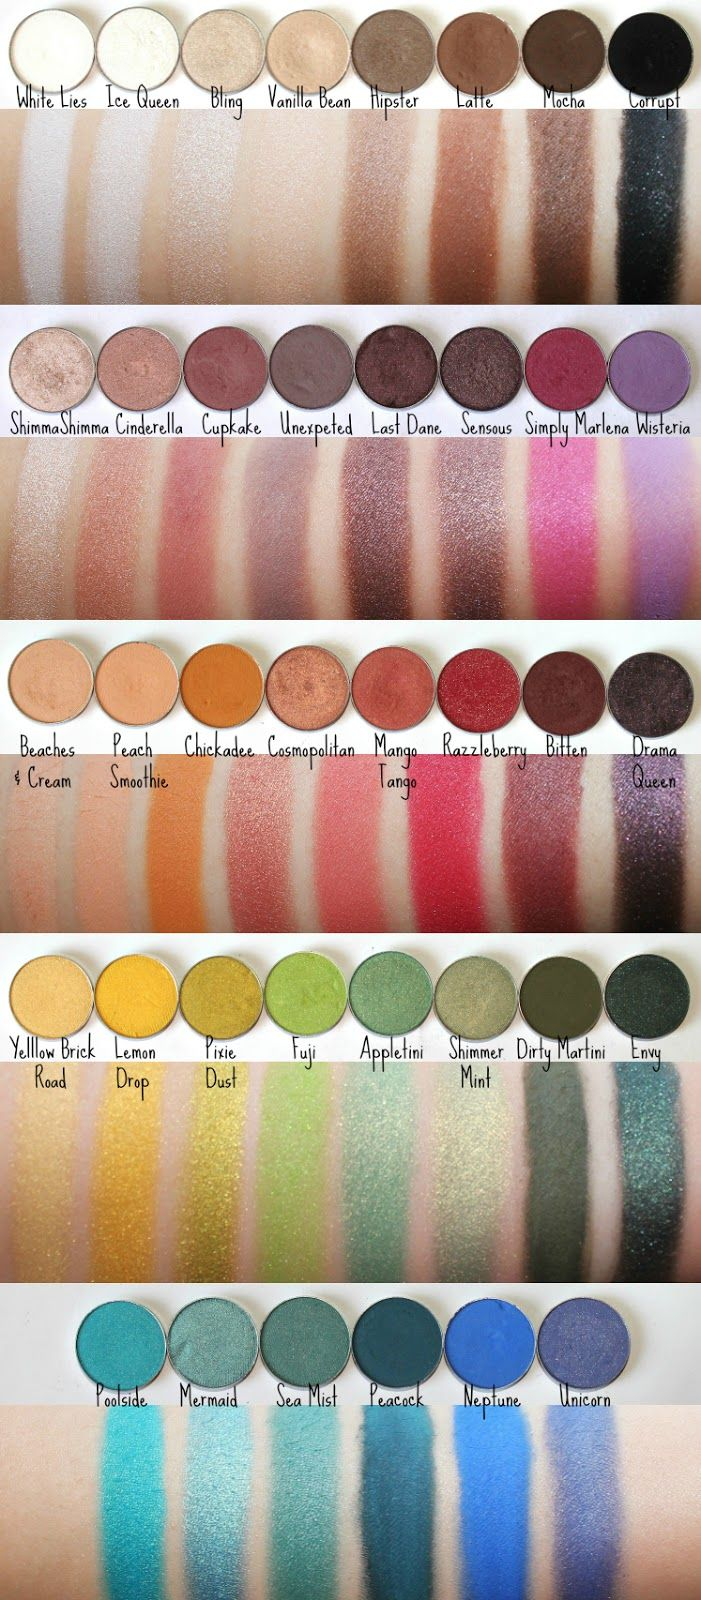 Makeup Geek eyeshadow swatches! Best shadows i have ever used! And for HALF the price of MAC!